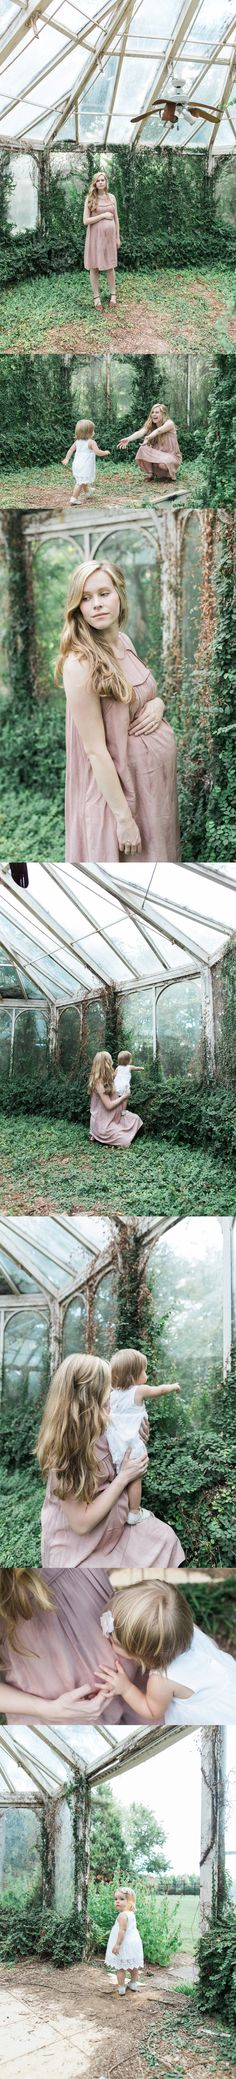 unique greenhouse maternity photos | second baby maternity photos